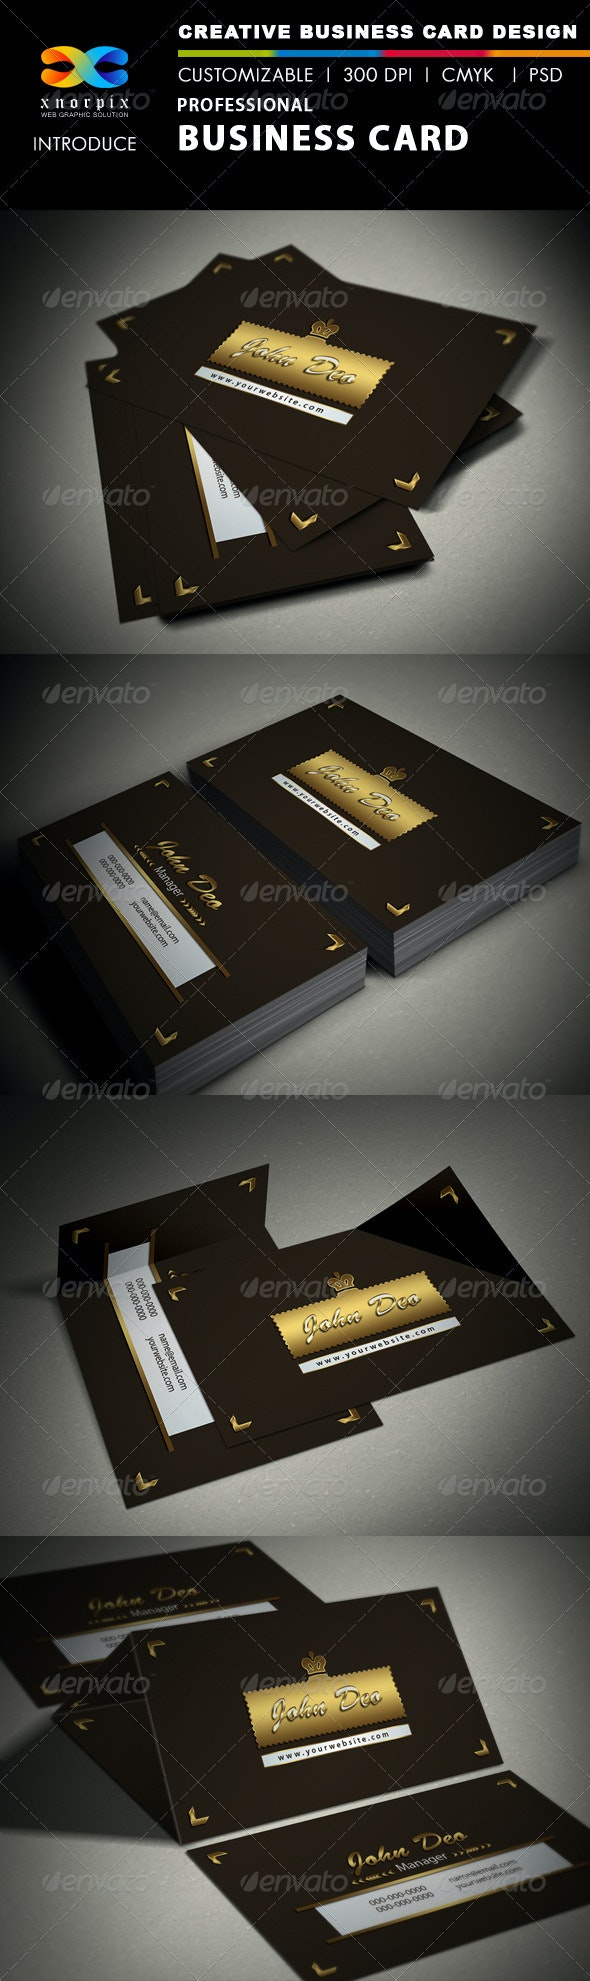 Professional Business Card - Creative Business Cards